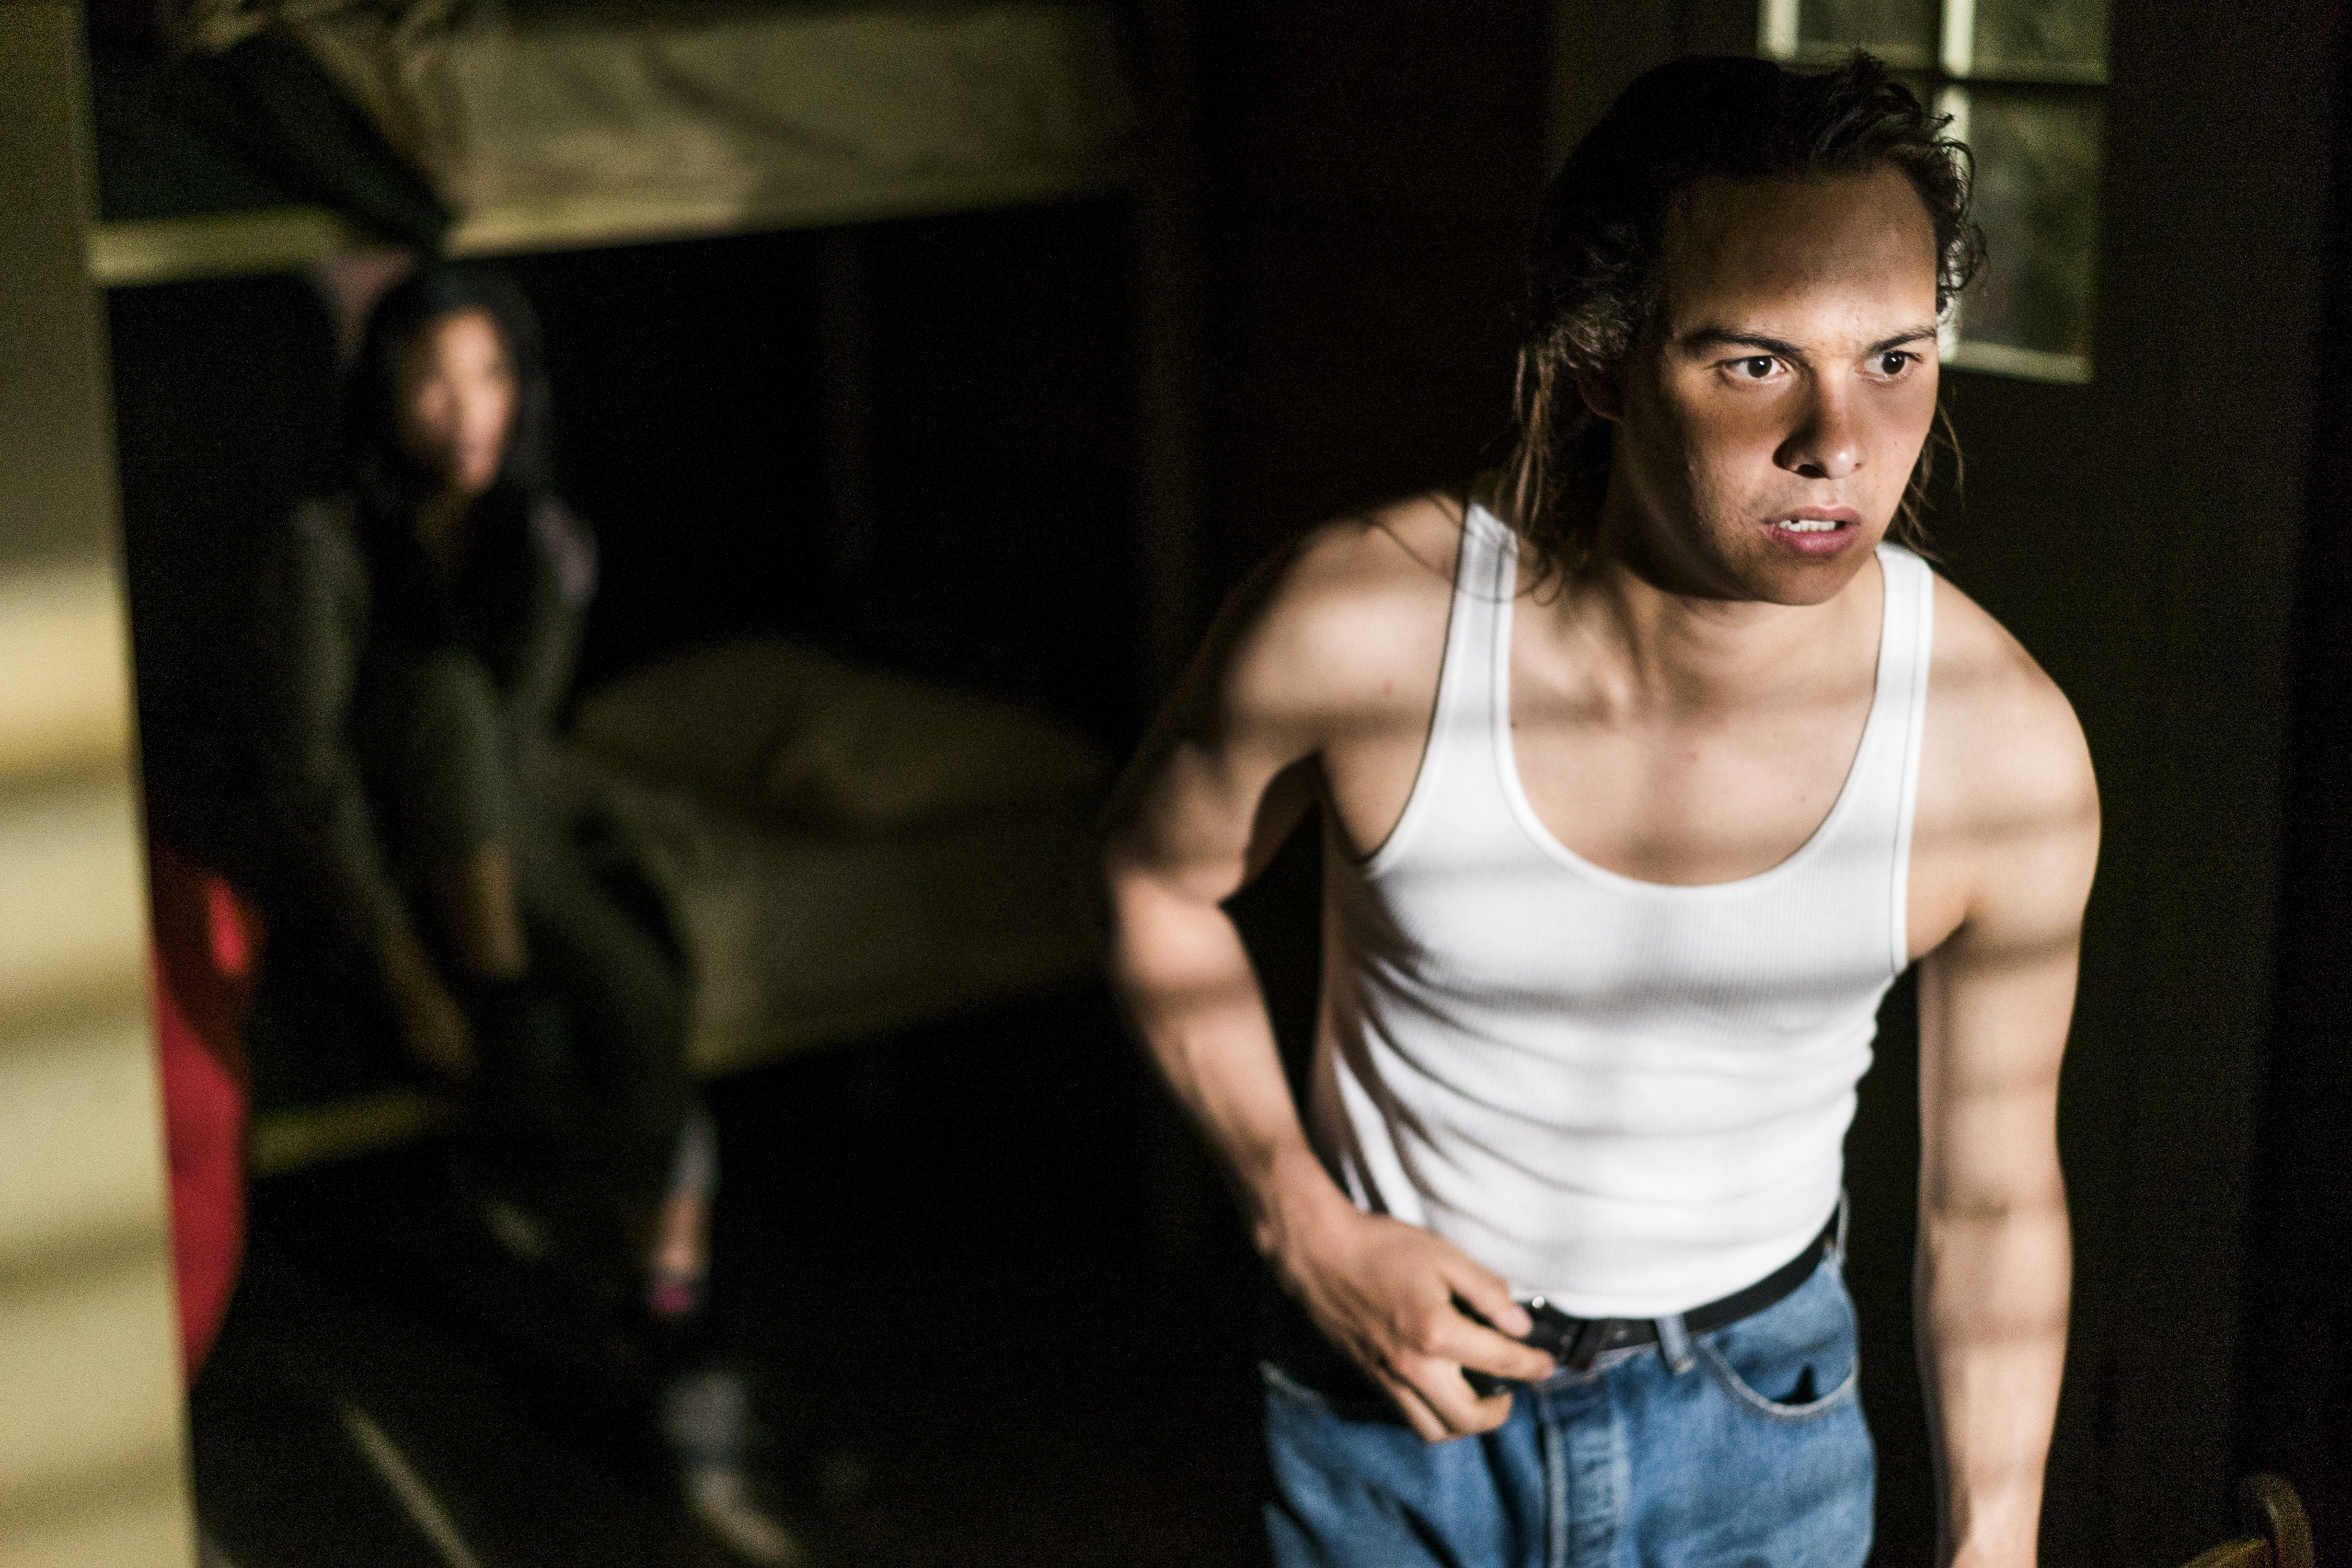 Frank Dillane (Nick Clark) - Fear the Walking Dead Saison 3 Épisode 5 - Photo: Richard Foreman, Jr/AMC